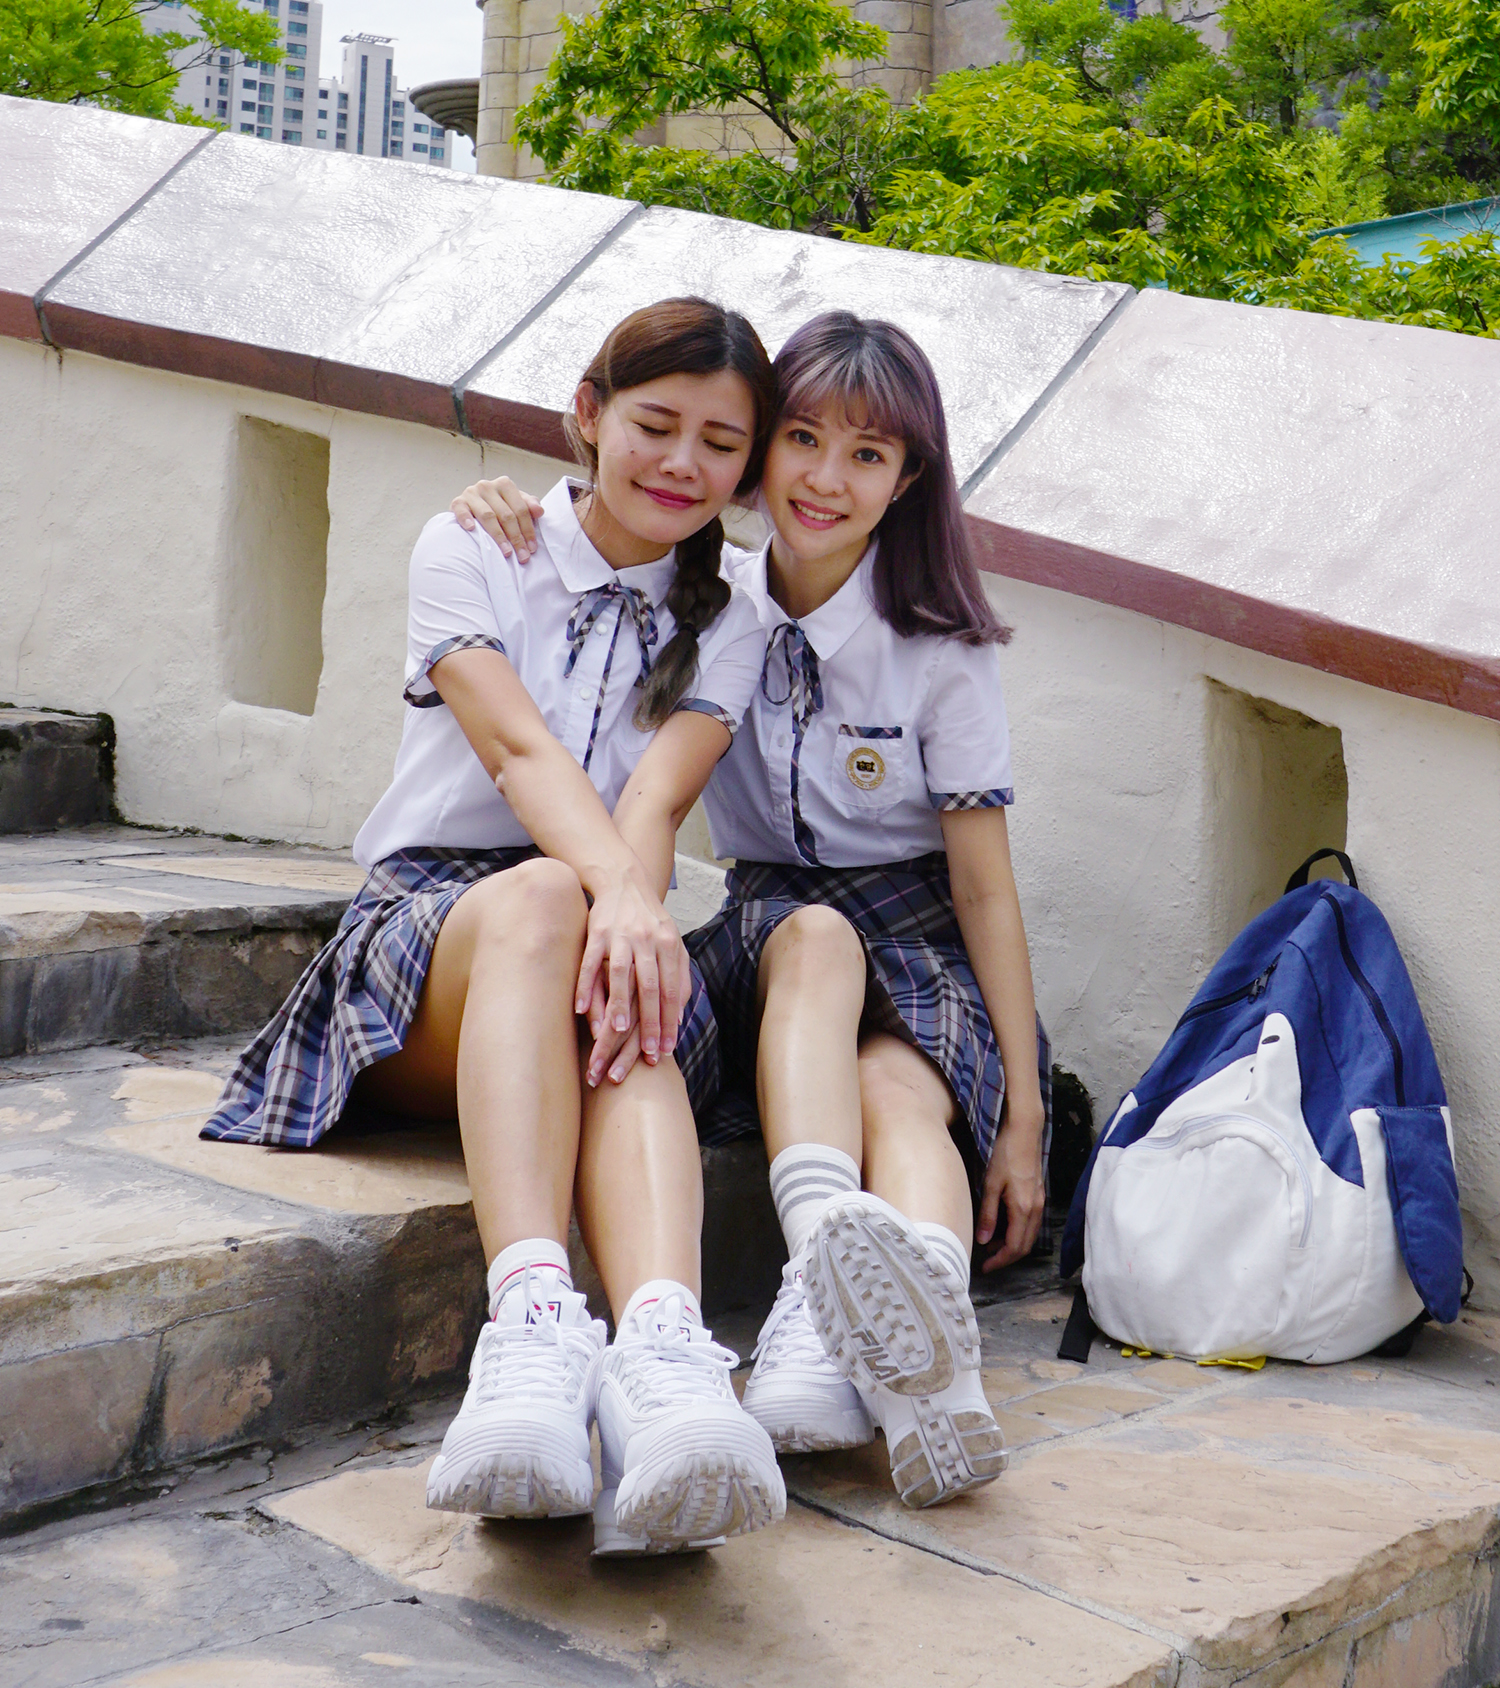 Korean_School_Uniform_Rental_Ehwa_Gyobok_Seoul_Korea_13